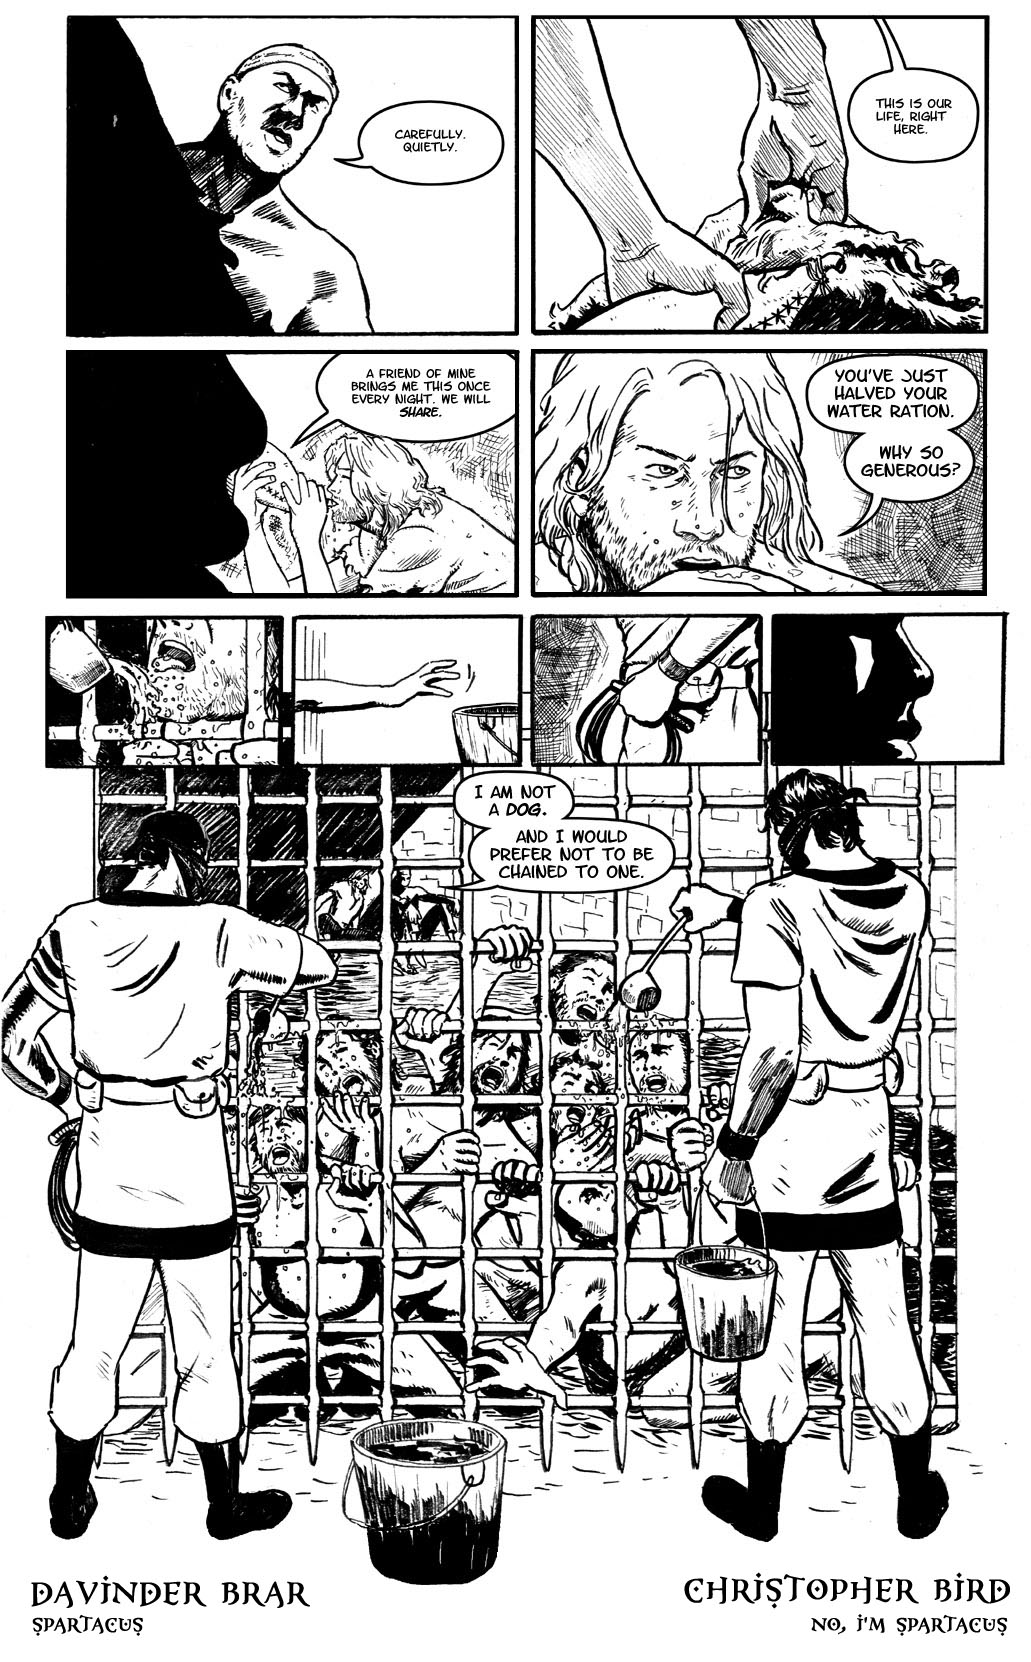 Book 2, page 2